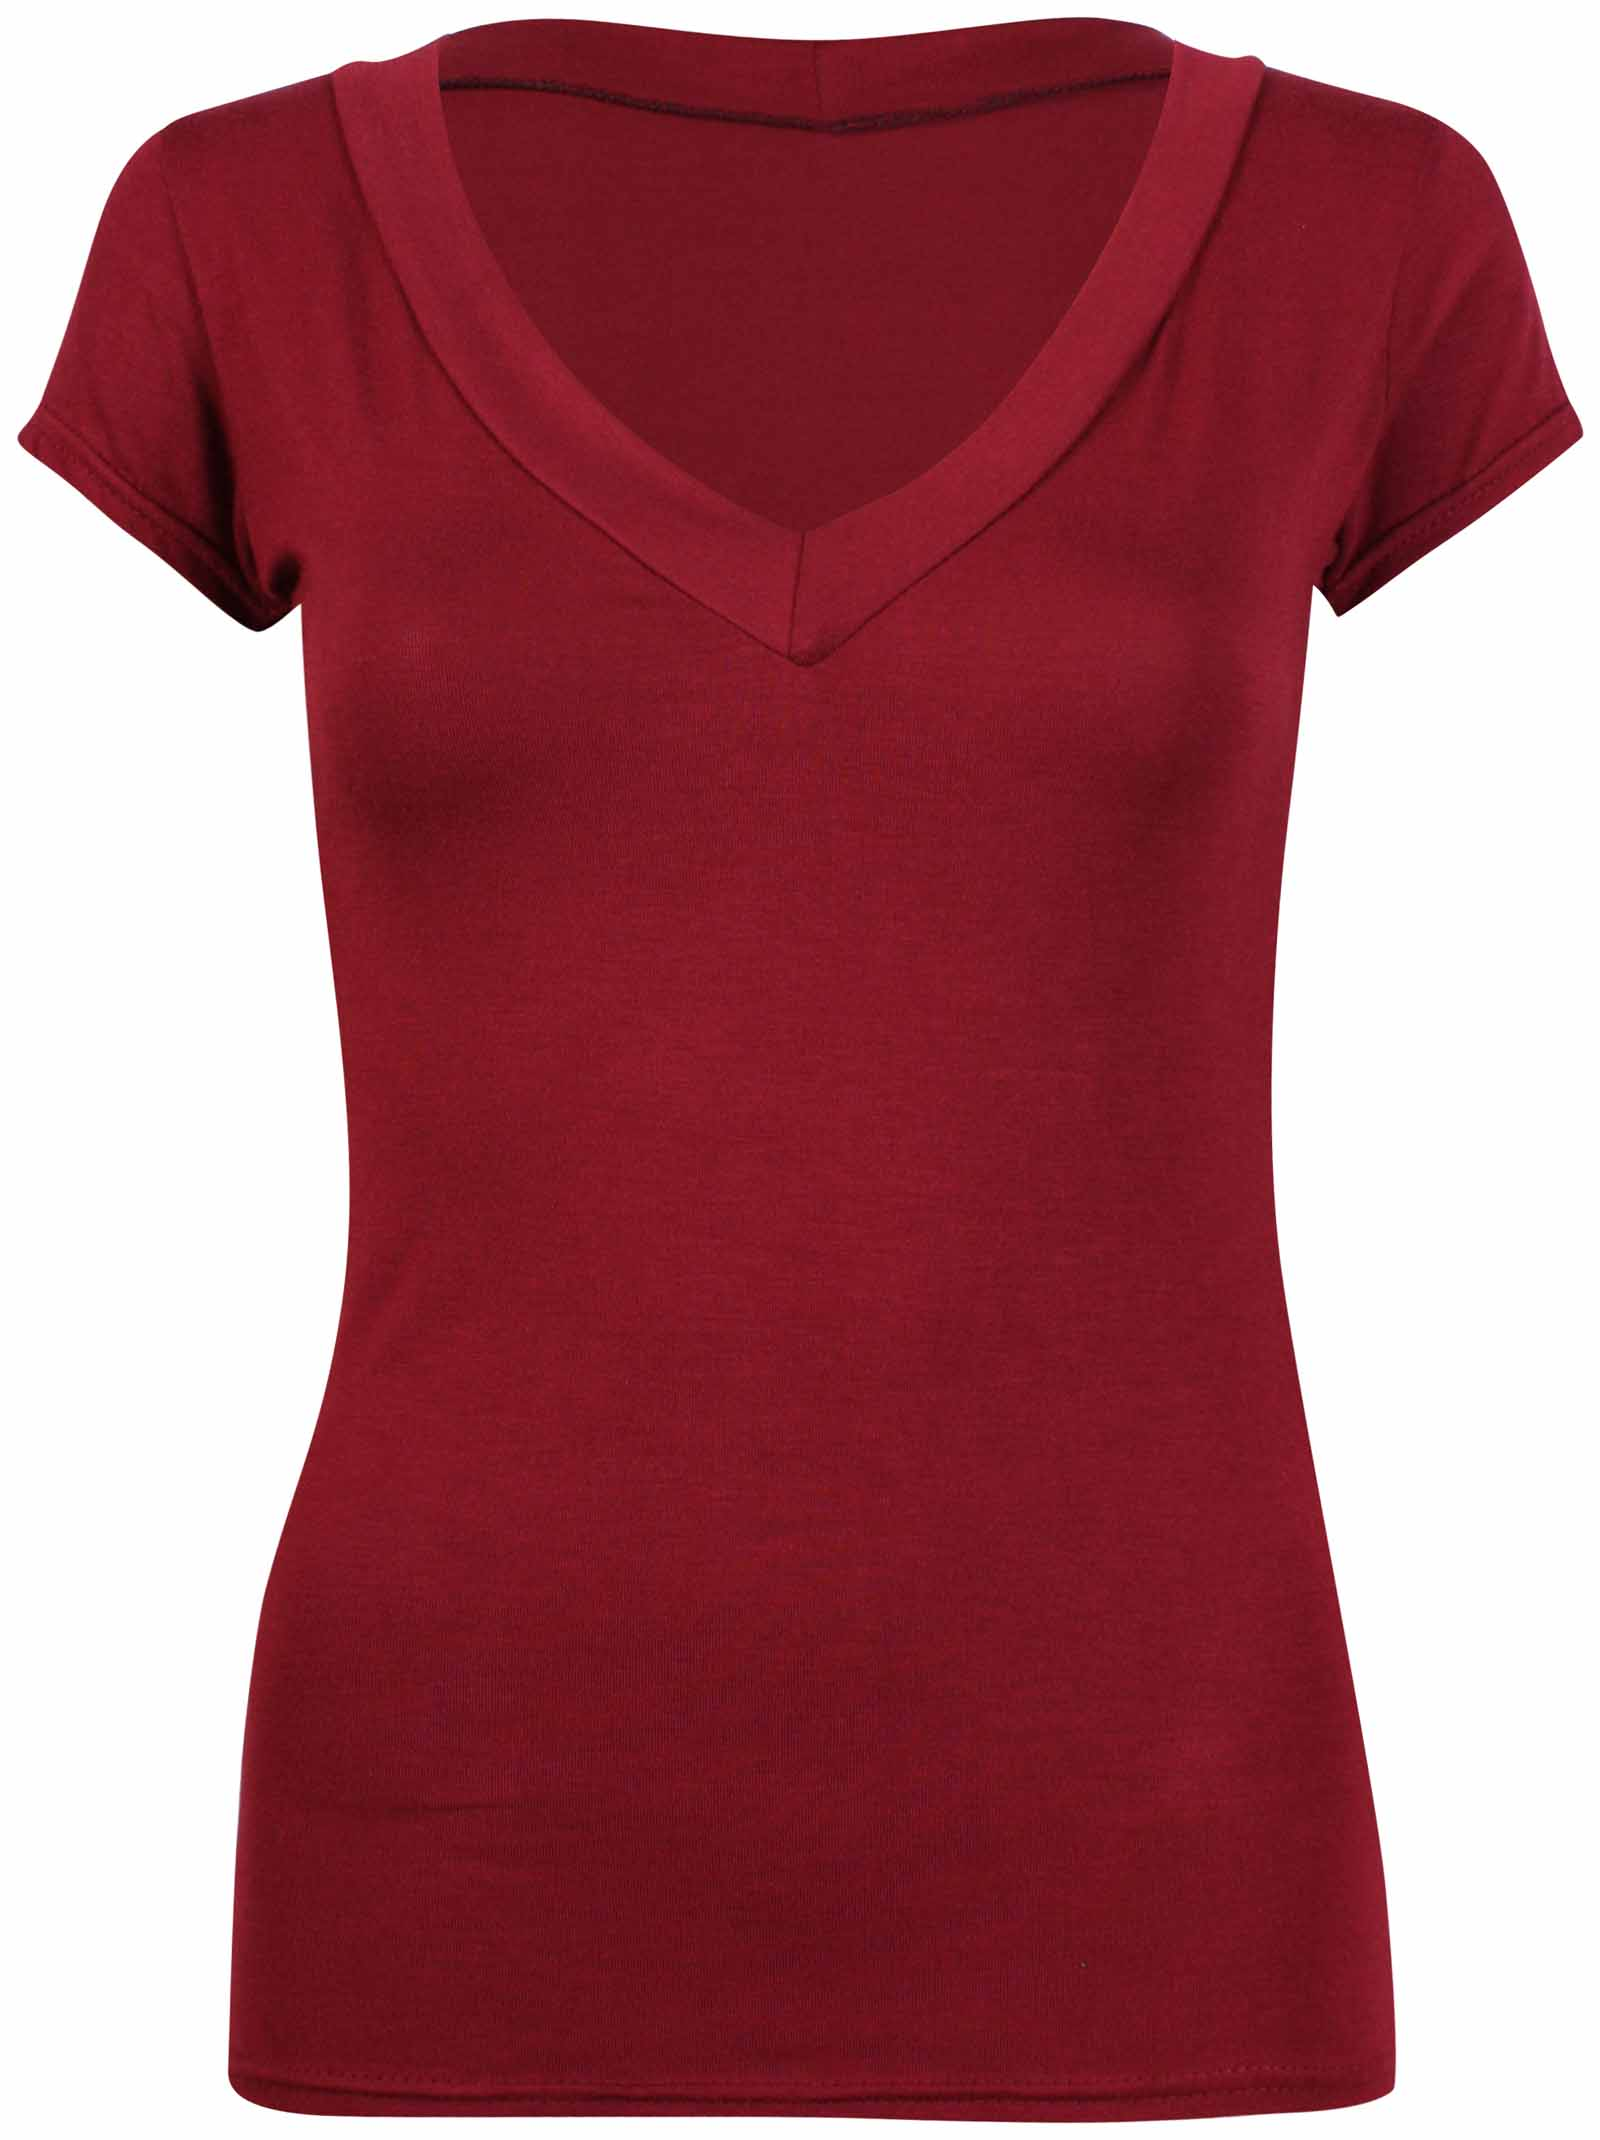 Ladies-Short-Cap-Sleeve-Plain-Top-Womens-New-Stretch-Fitted-V-Neck-Basic-T-Shirt